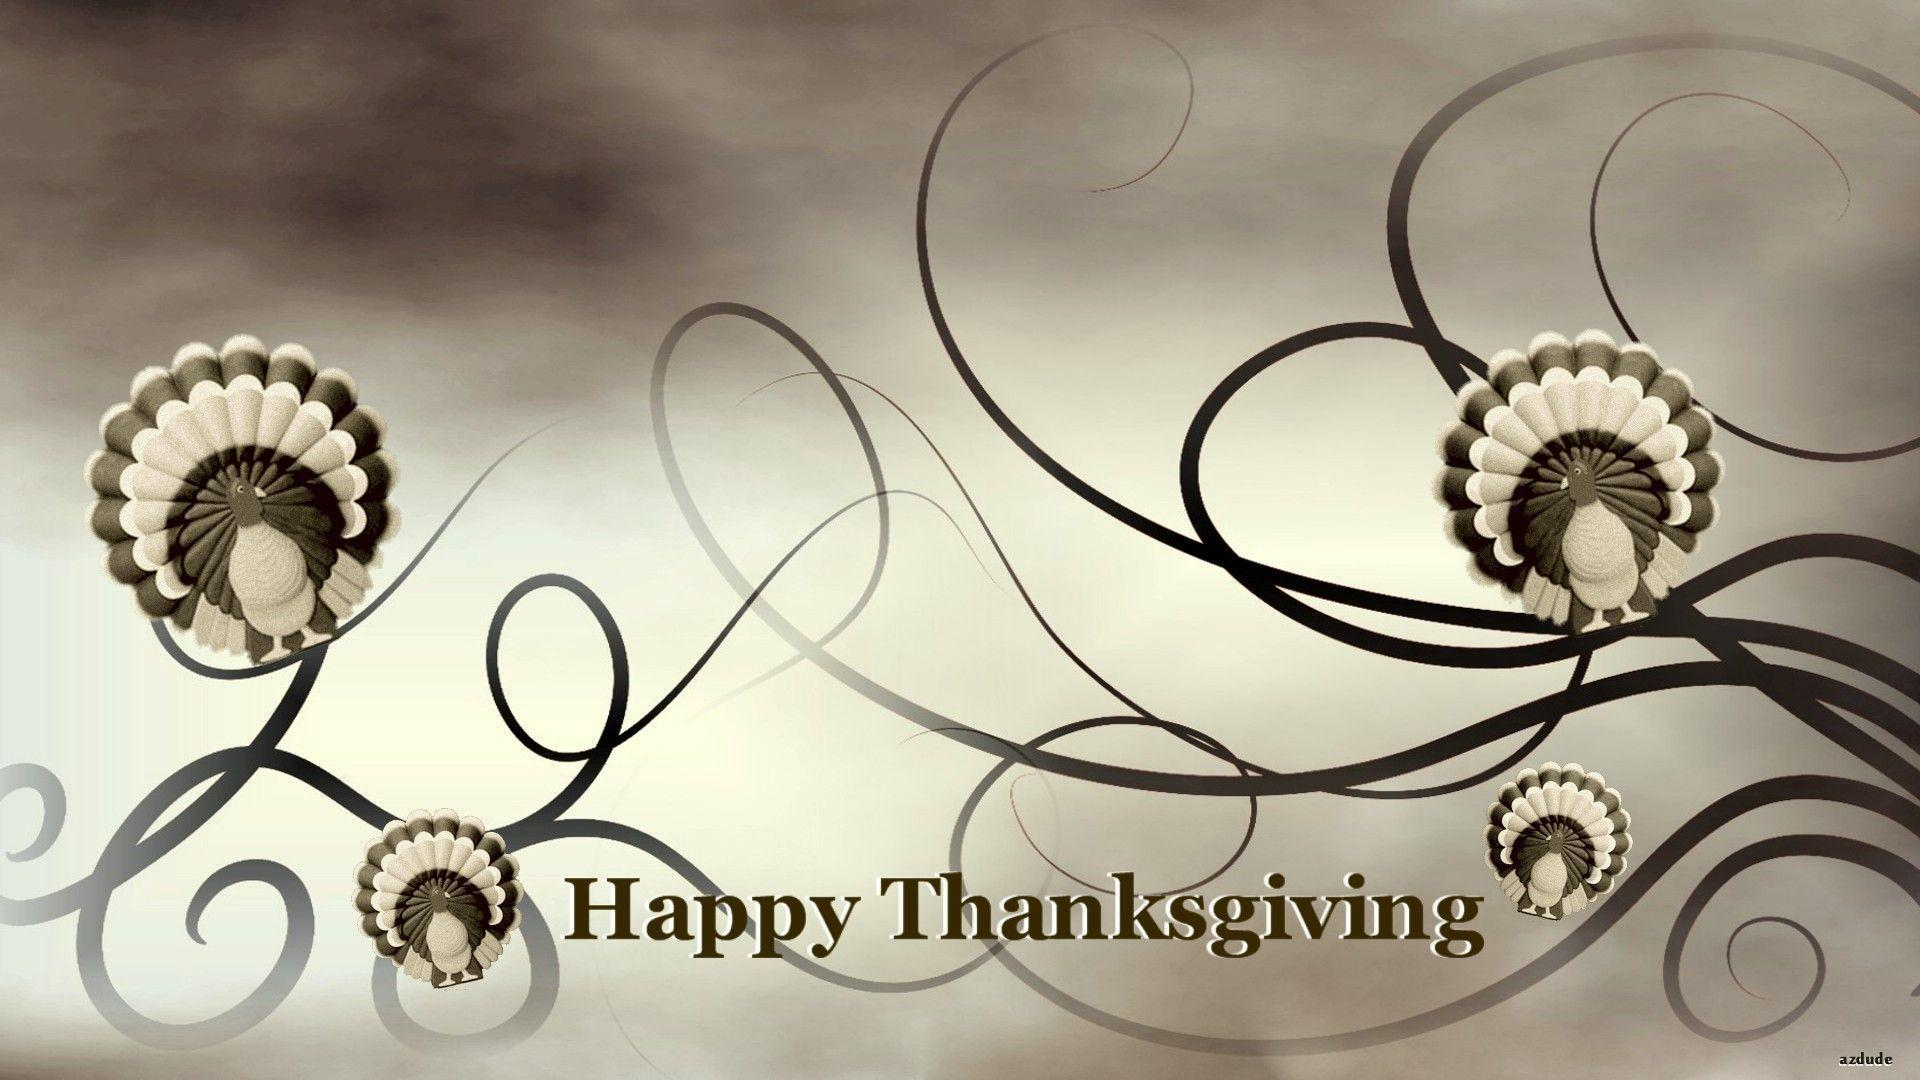 Happy Thanksgiving and Thanksgiving Turkey Wallpapers